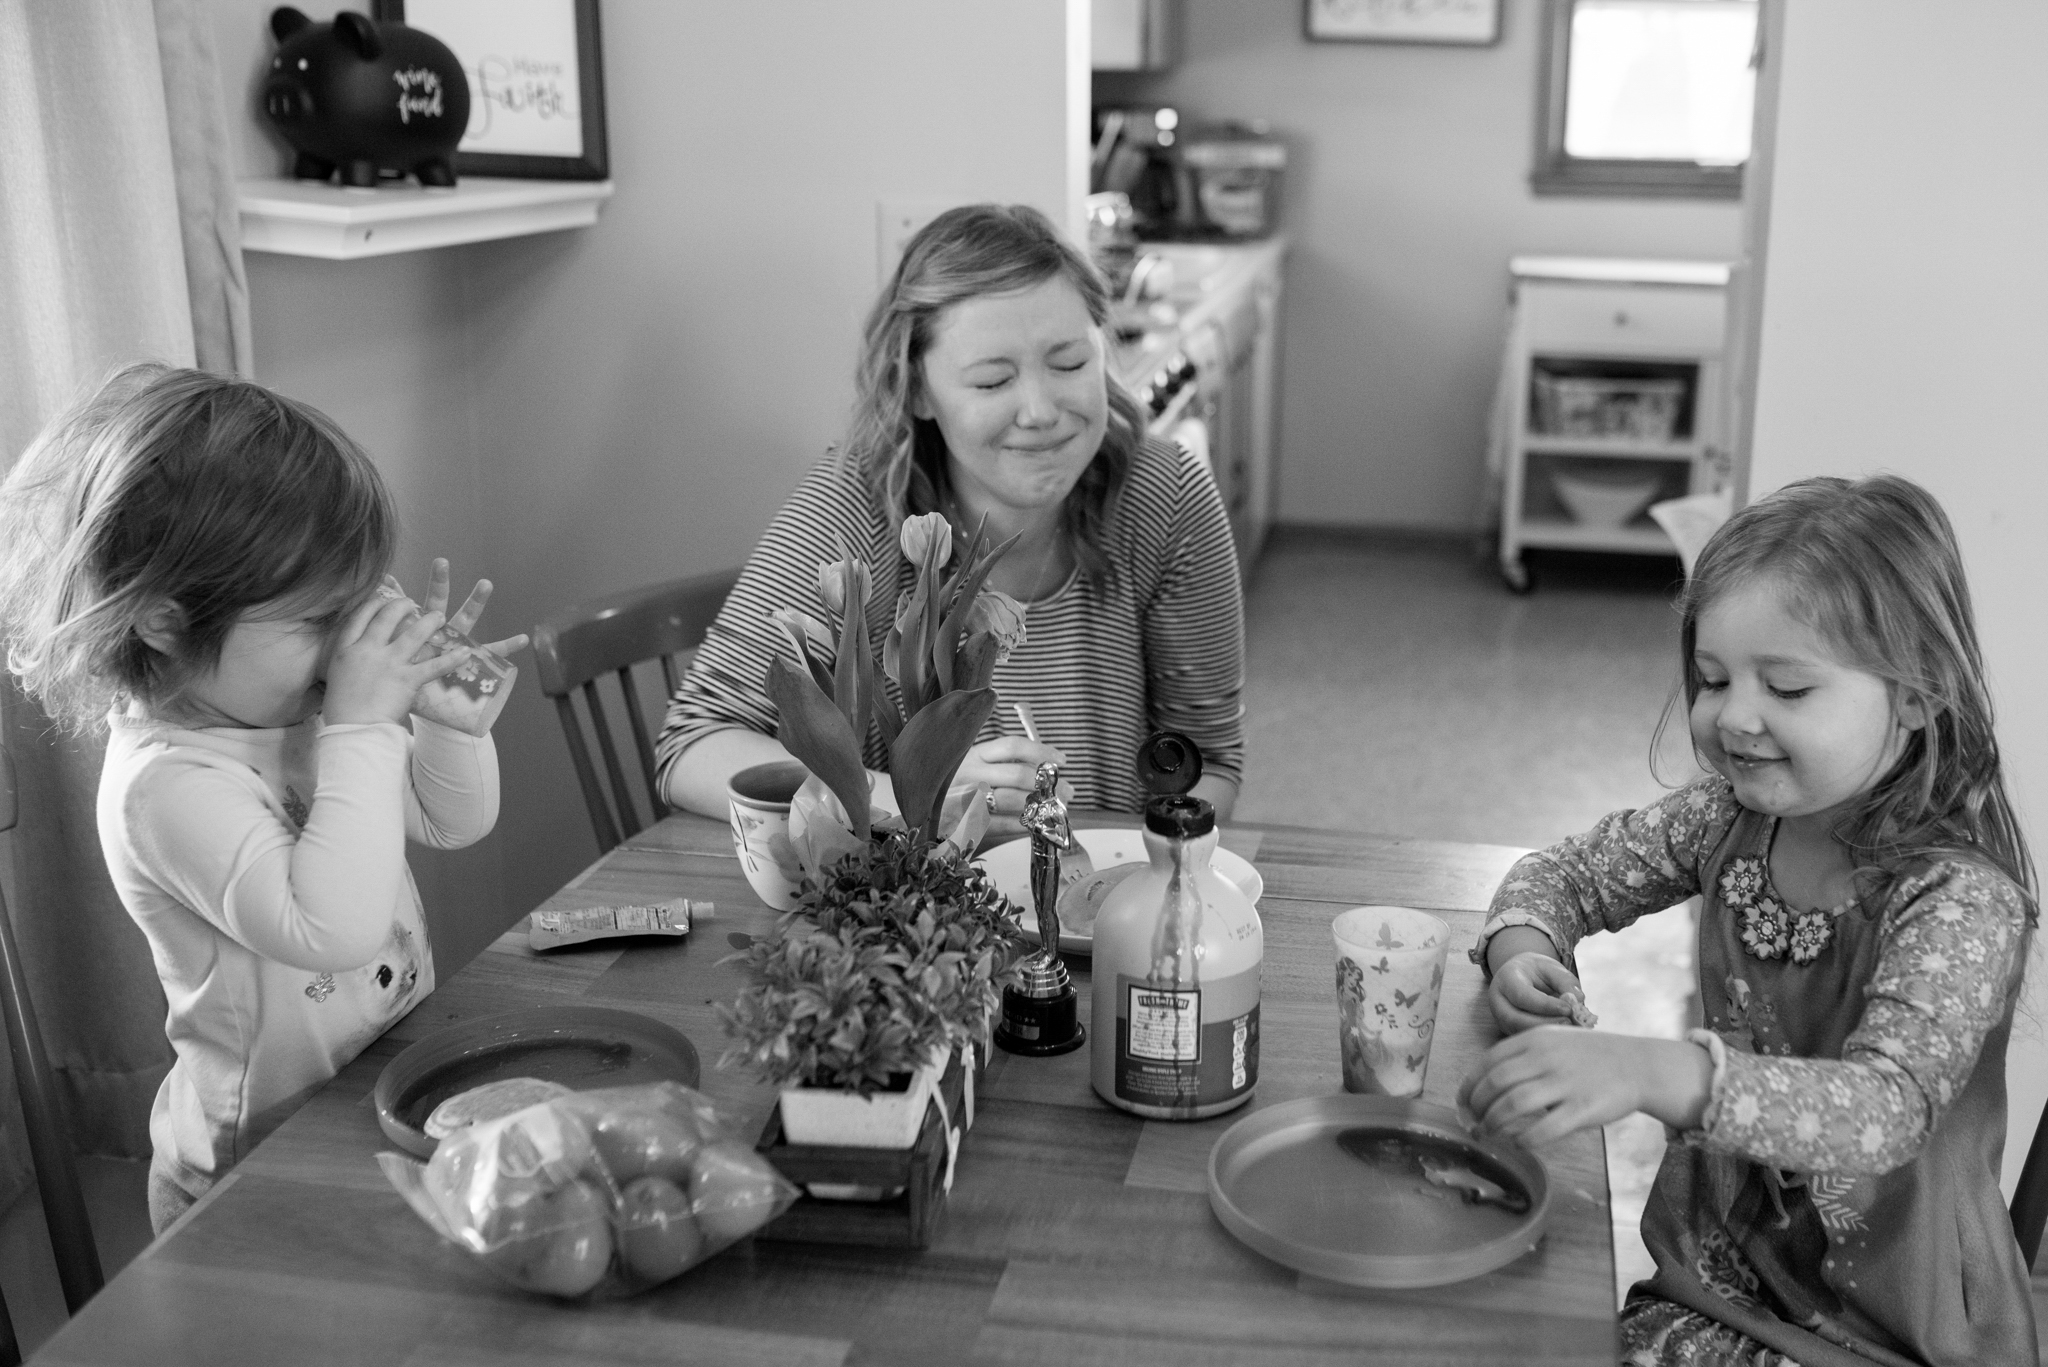 Mom and daughters at kitchen table, mom laughing